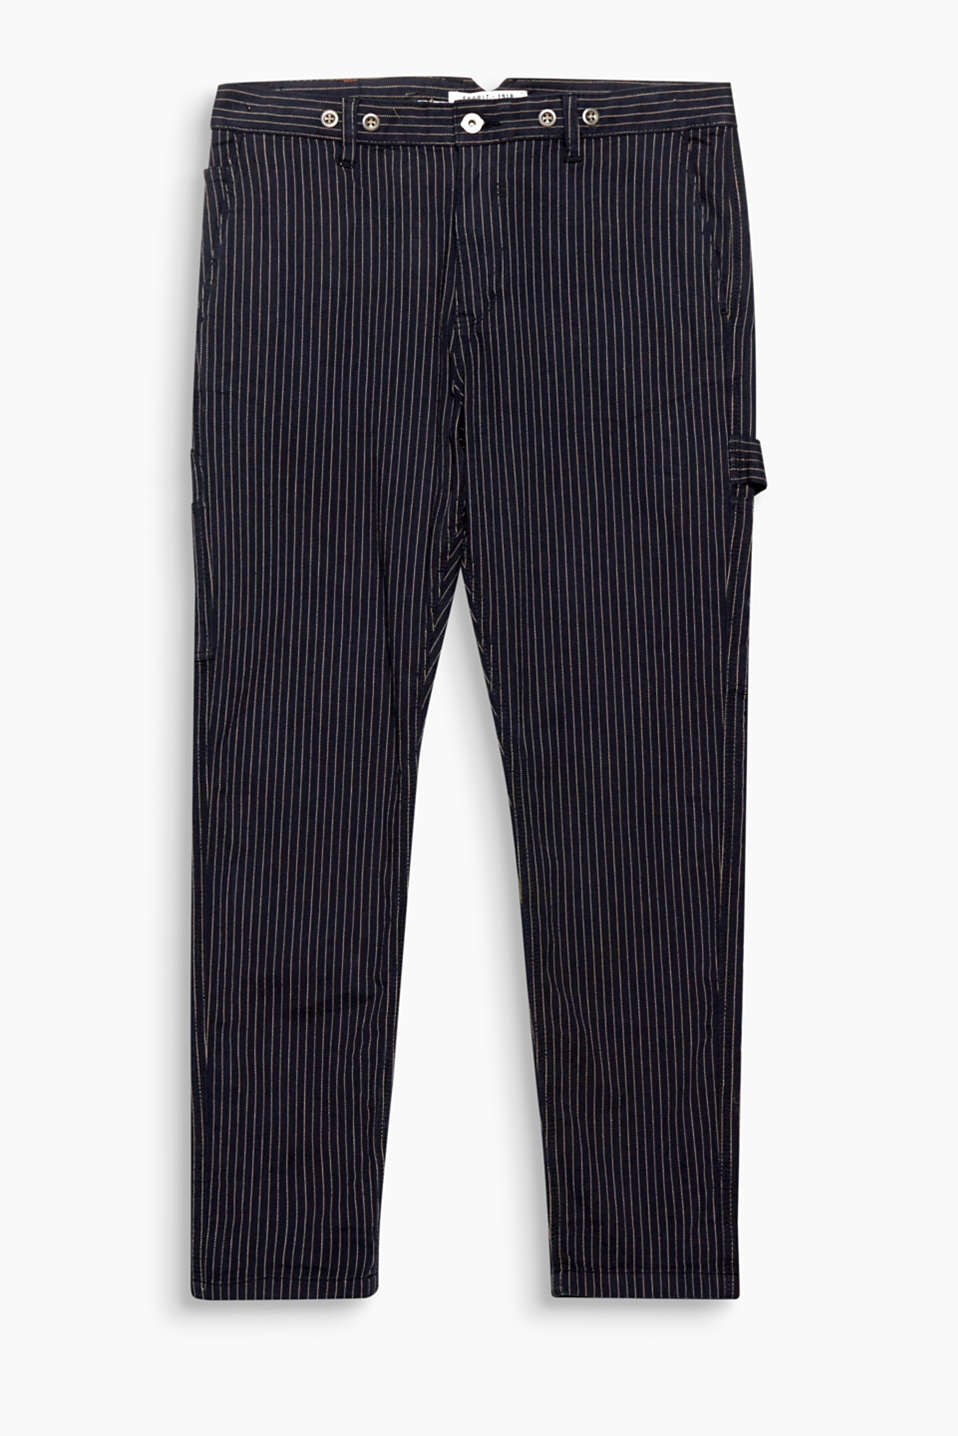 Vertical stripes and a herringbone pattern! Casual trousers – inspired by workwear!